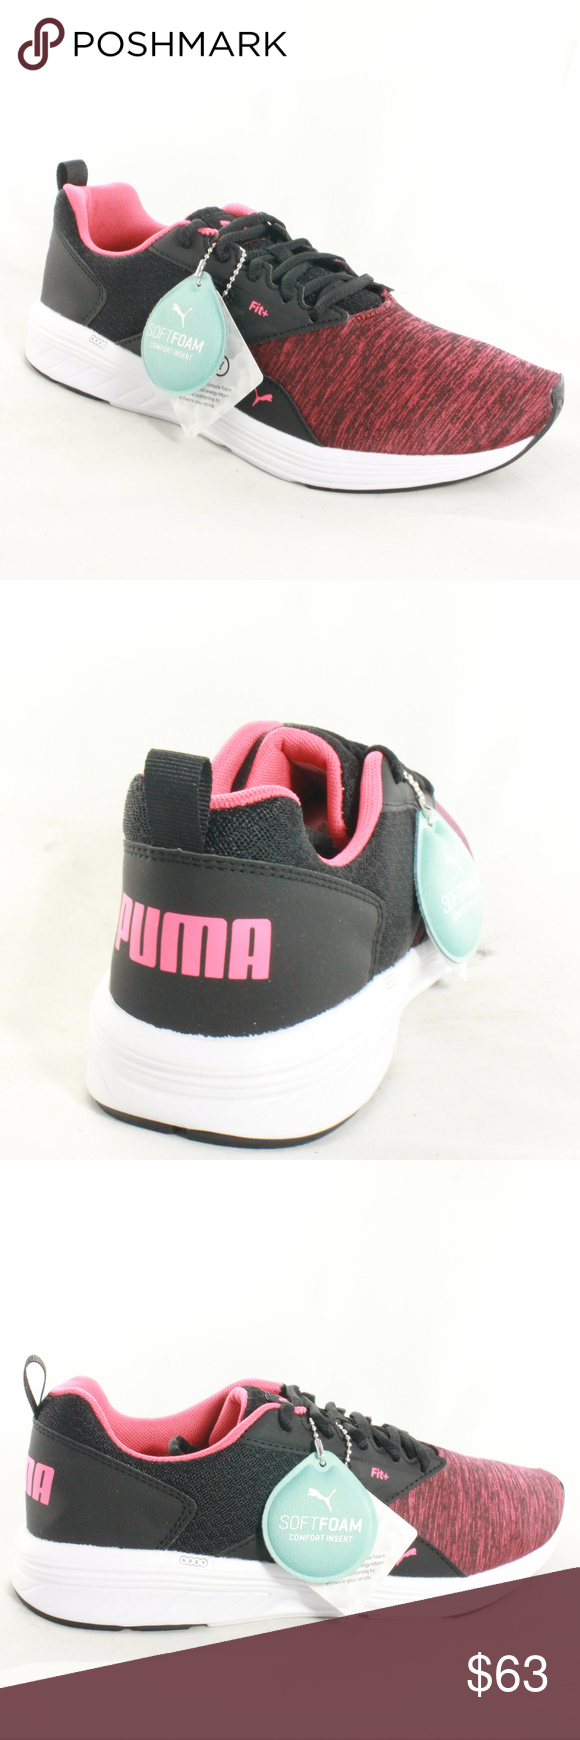 d9e81e28c17 New PUMA NRGY Comet Paradise Unisex Running Shoes All new running shoes